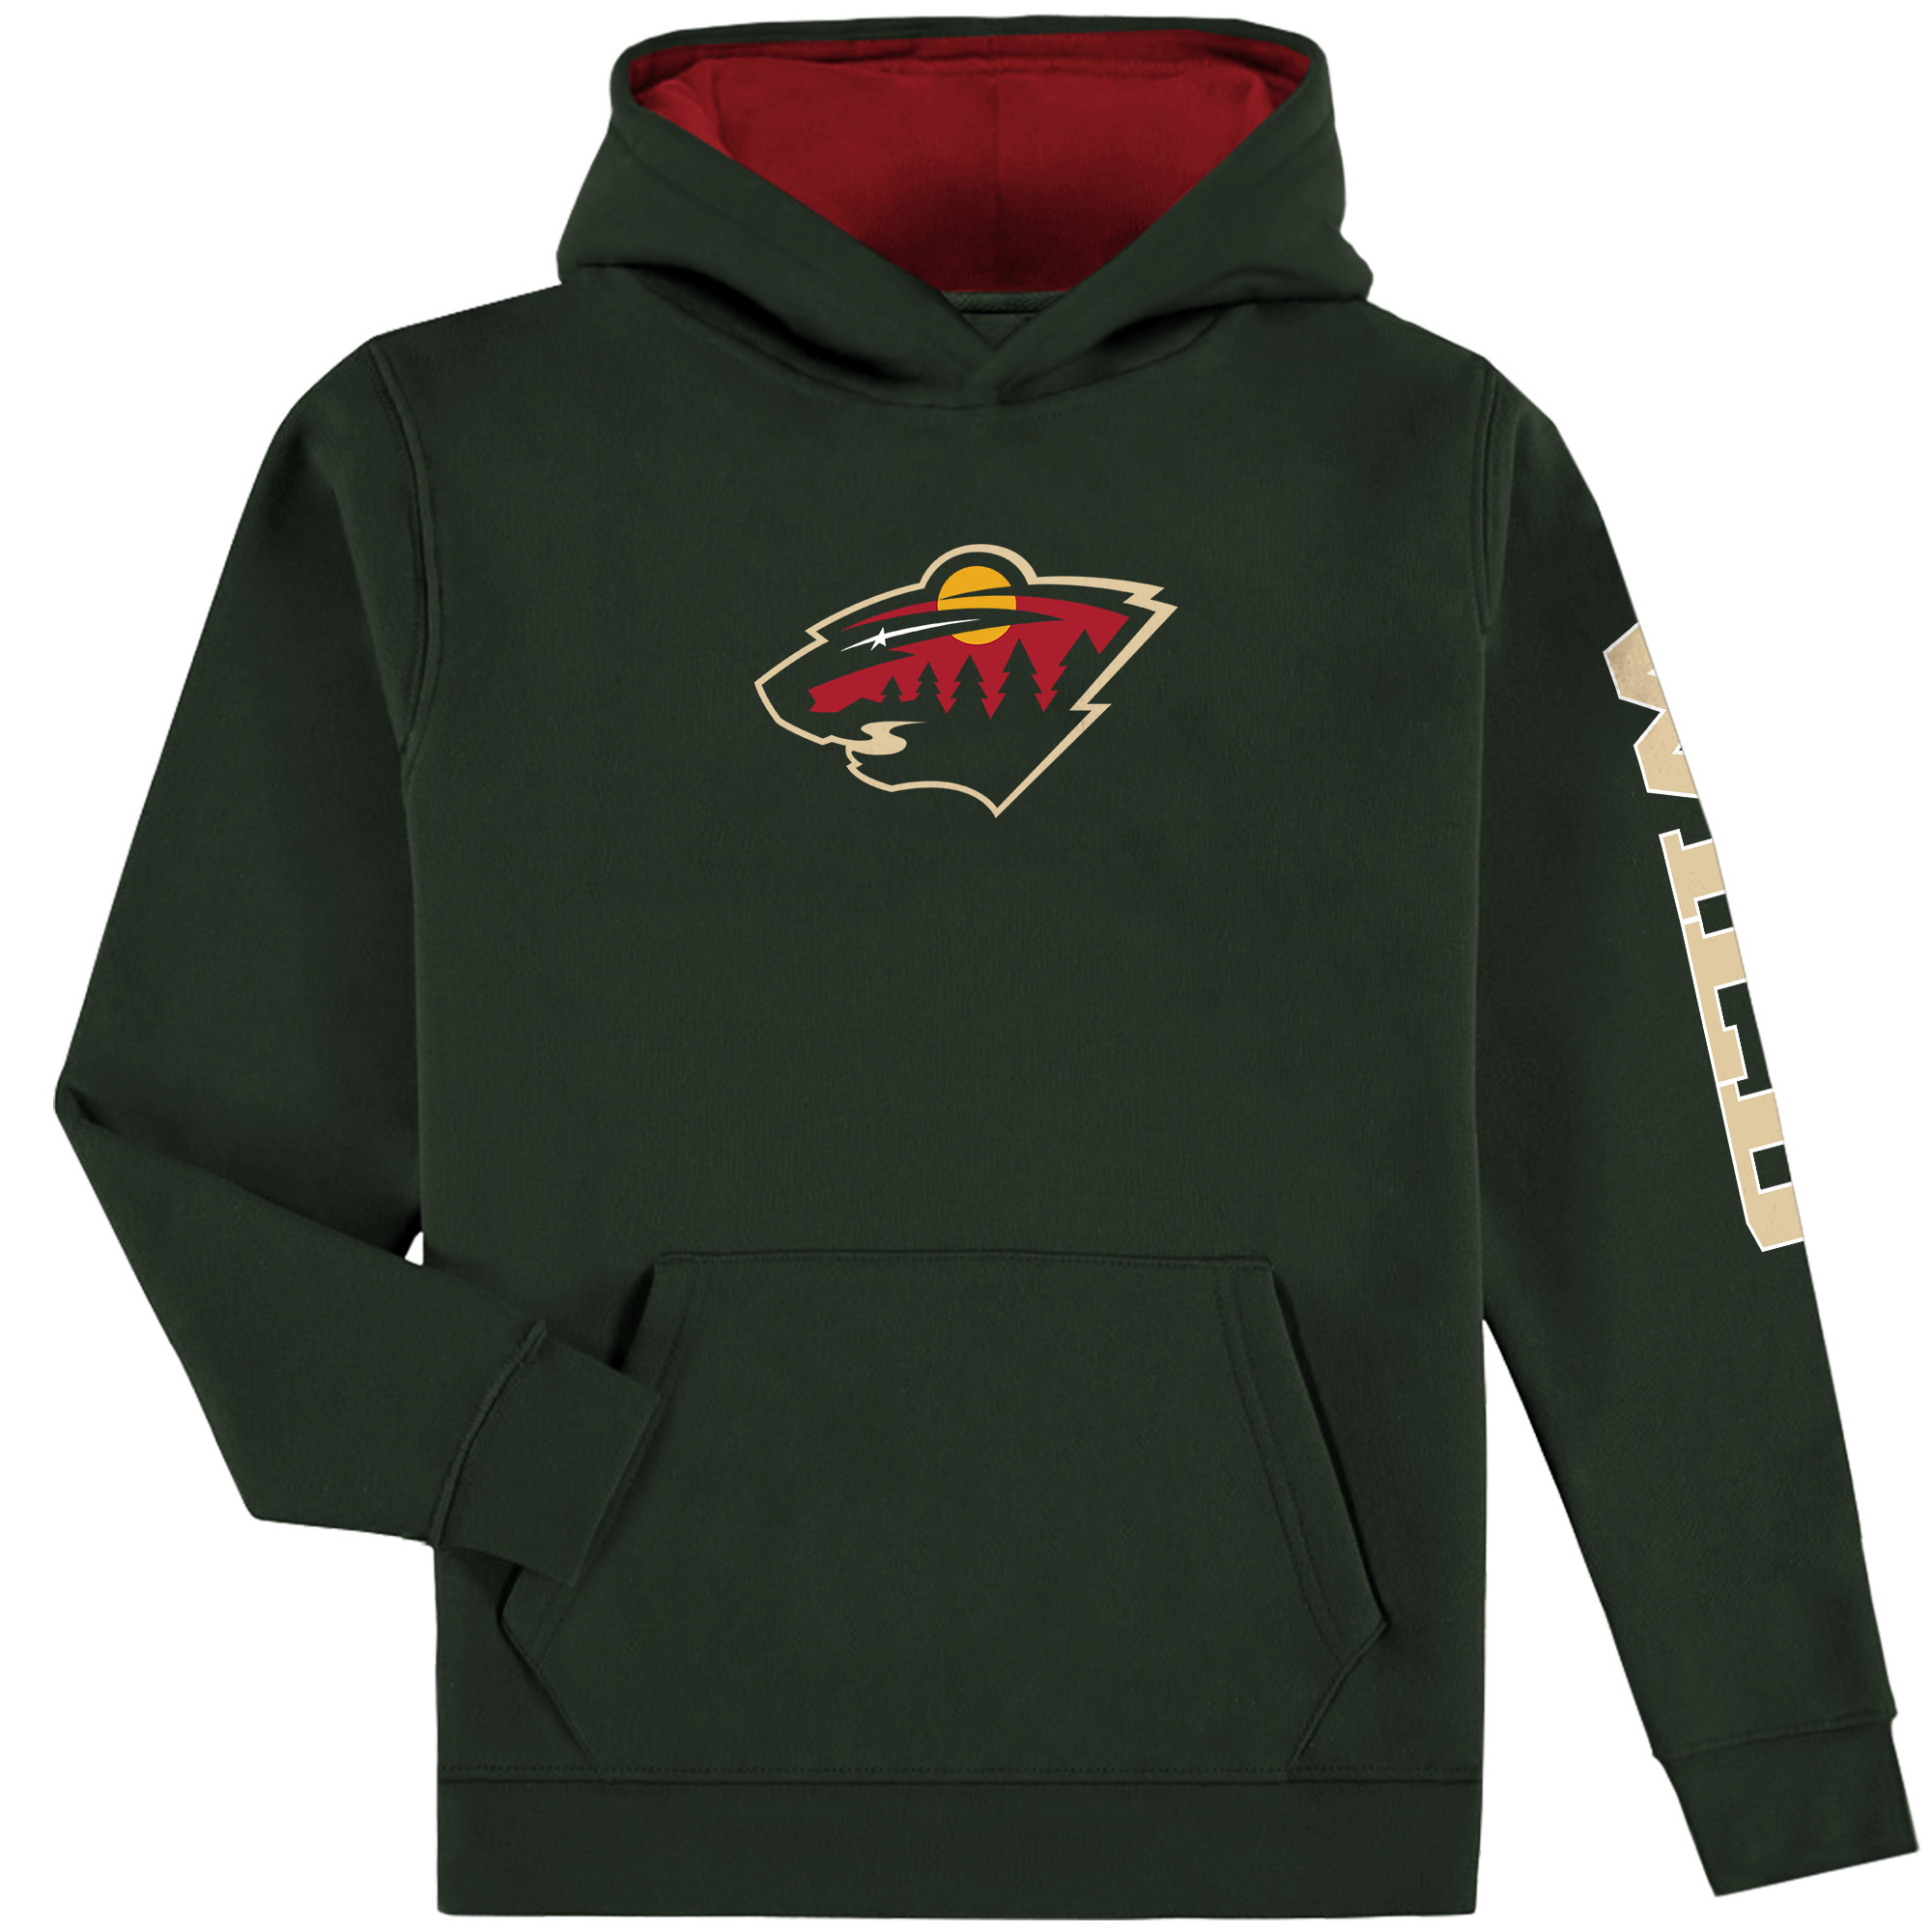 Minnesota Wild Fanatics Branded Youth Pullover Hoodie - Green/Red